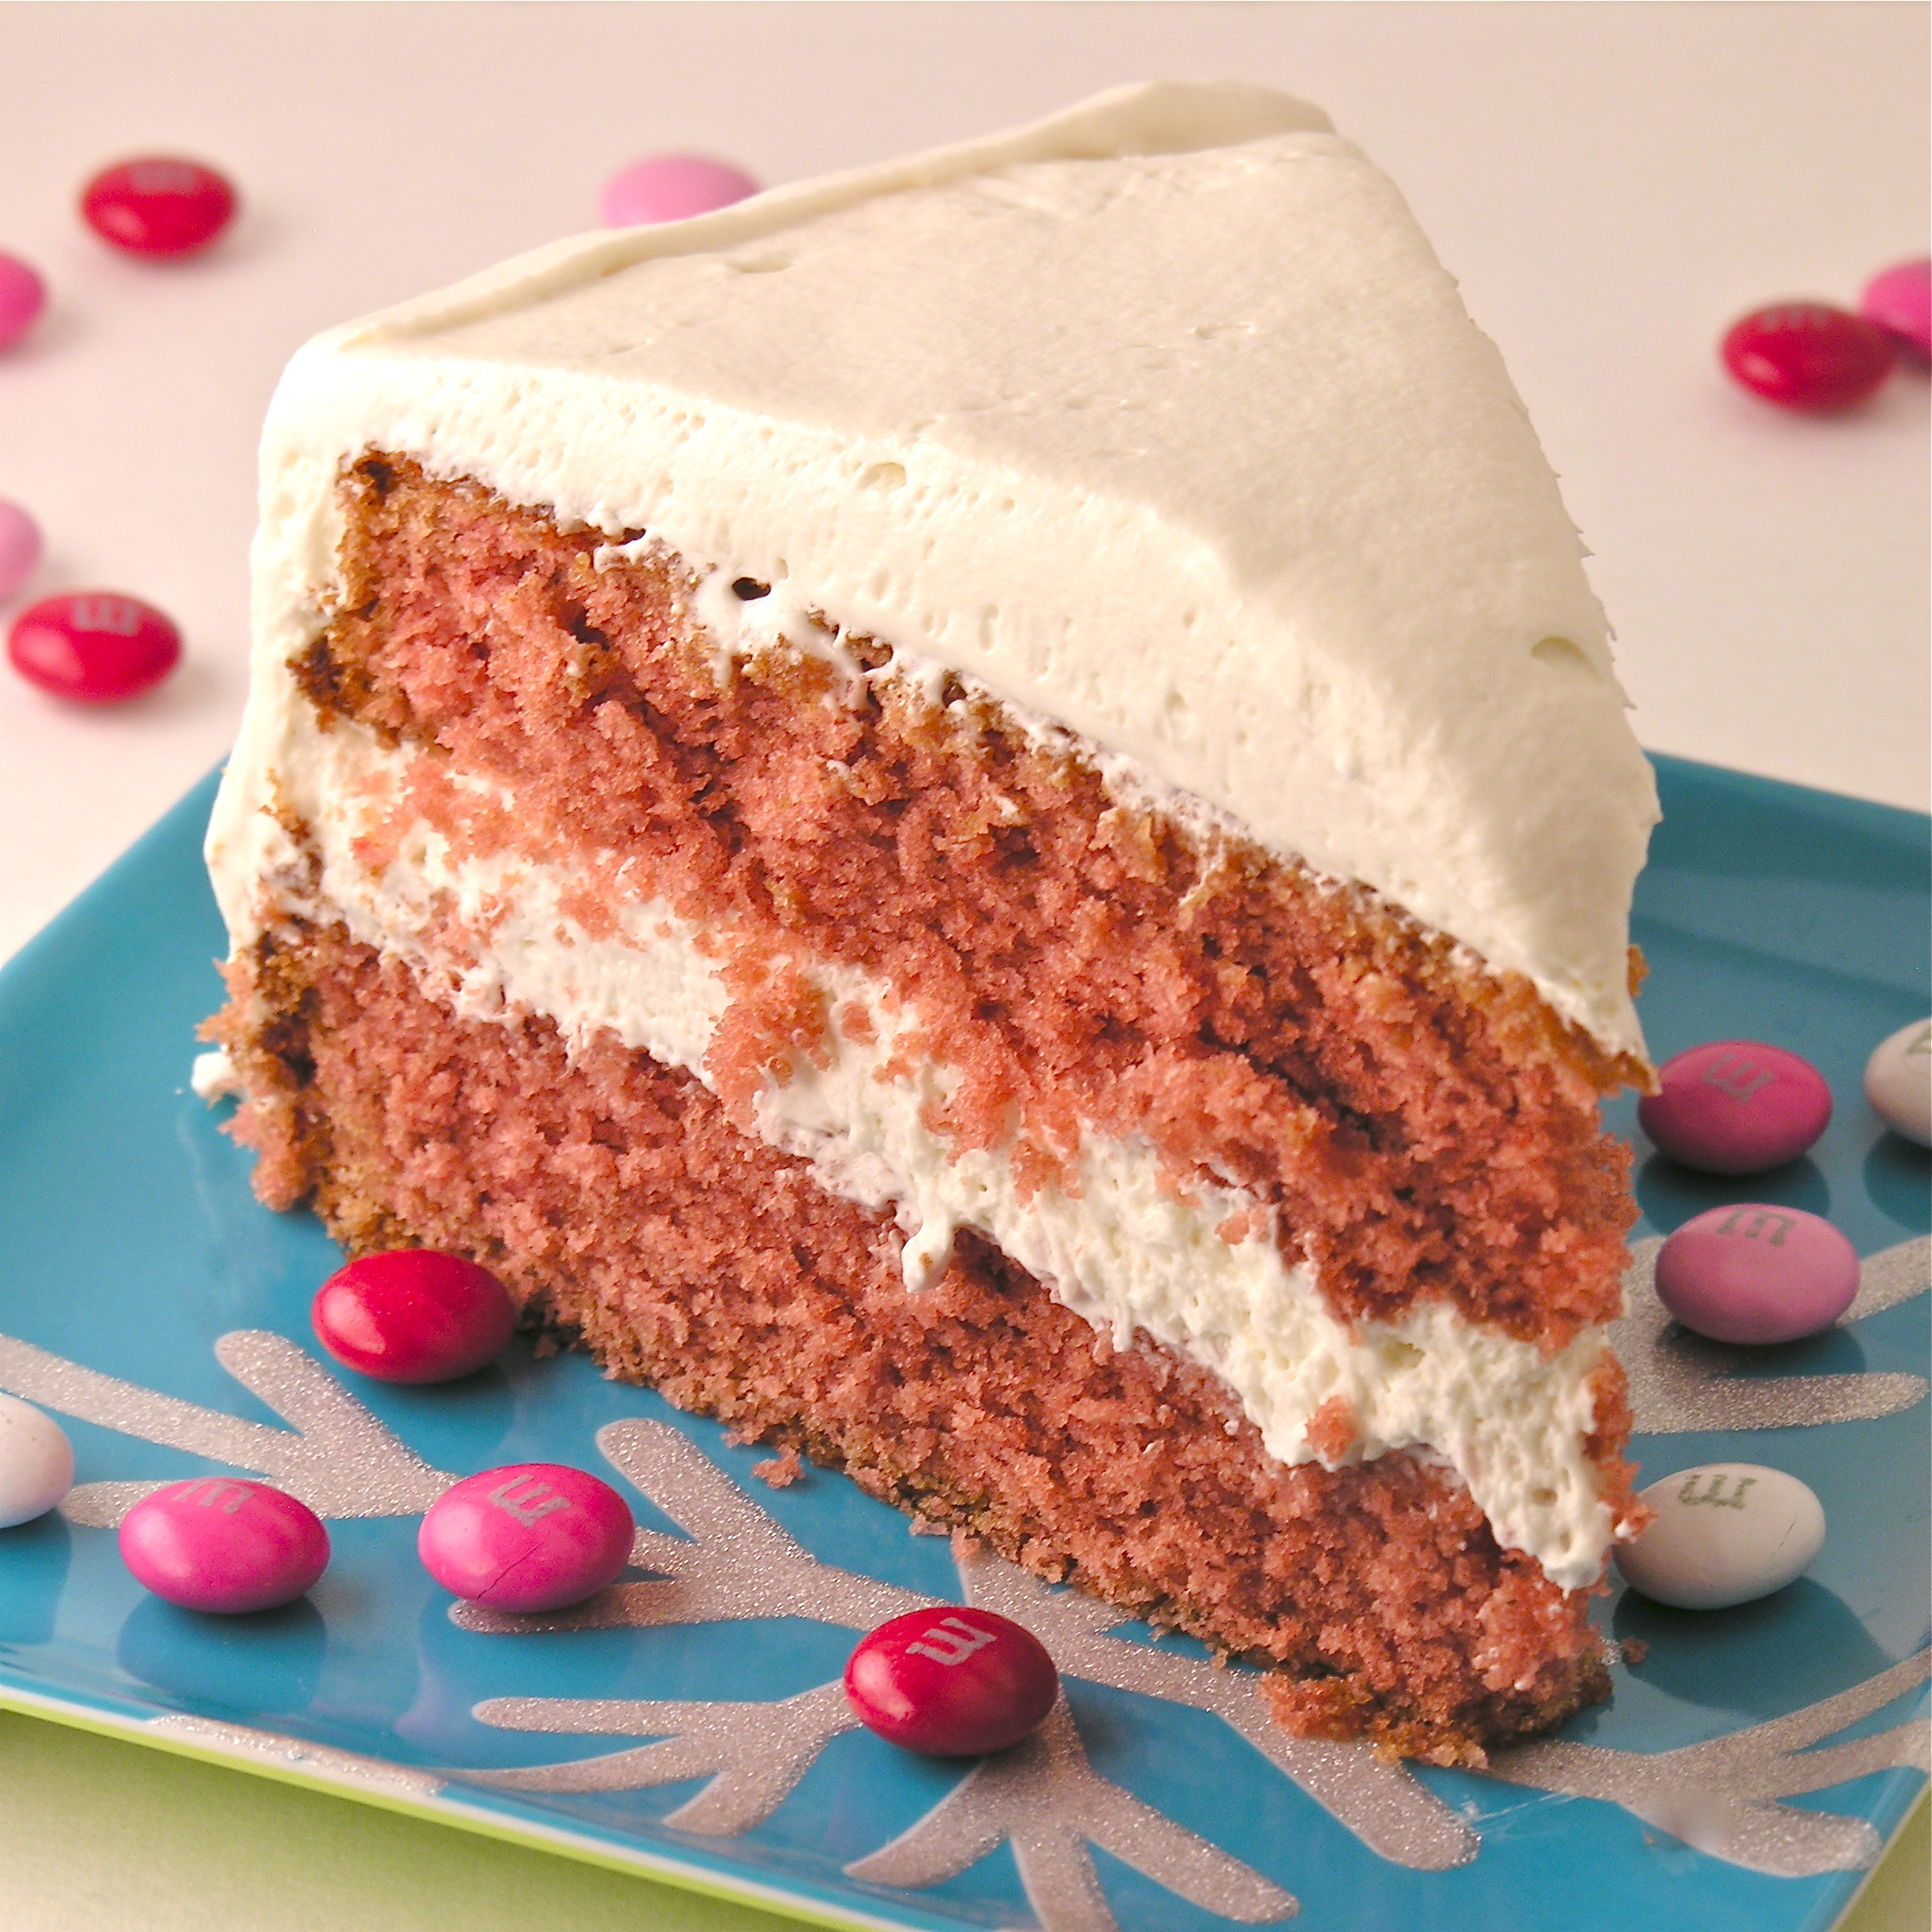 Old fashioned Red Velvet Cake eASYbAKED